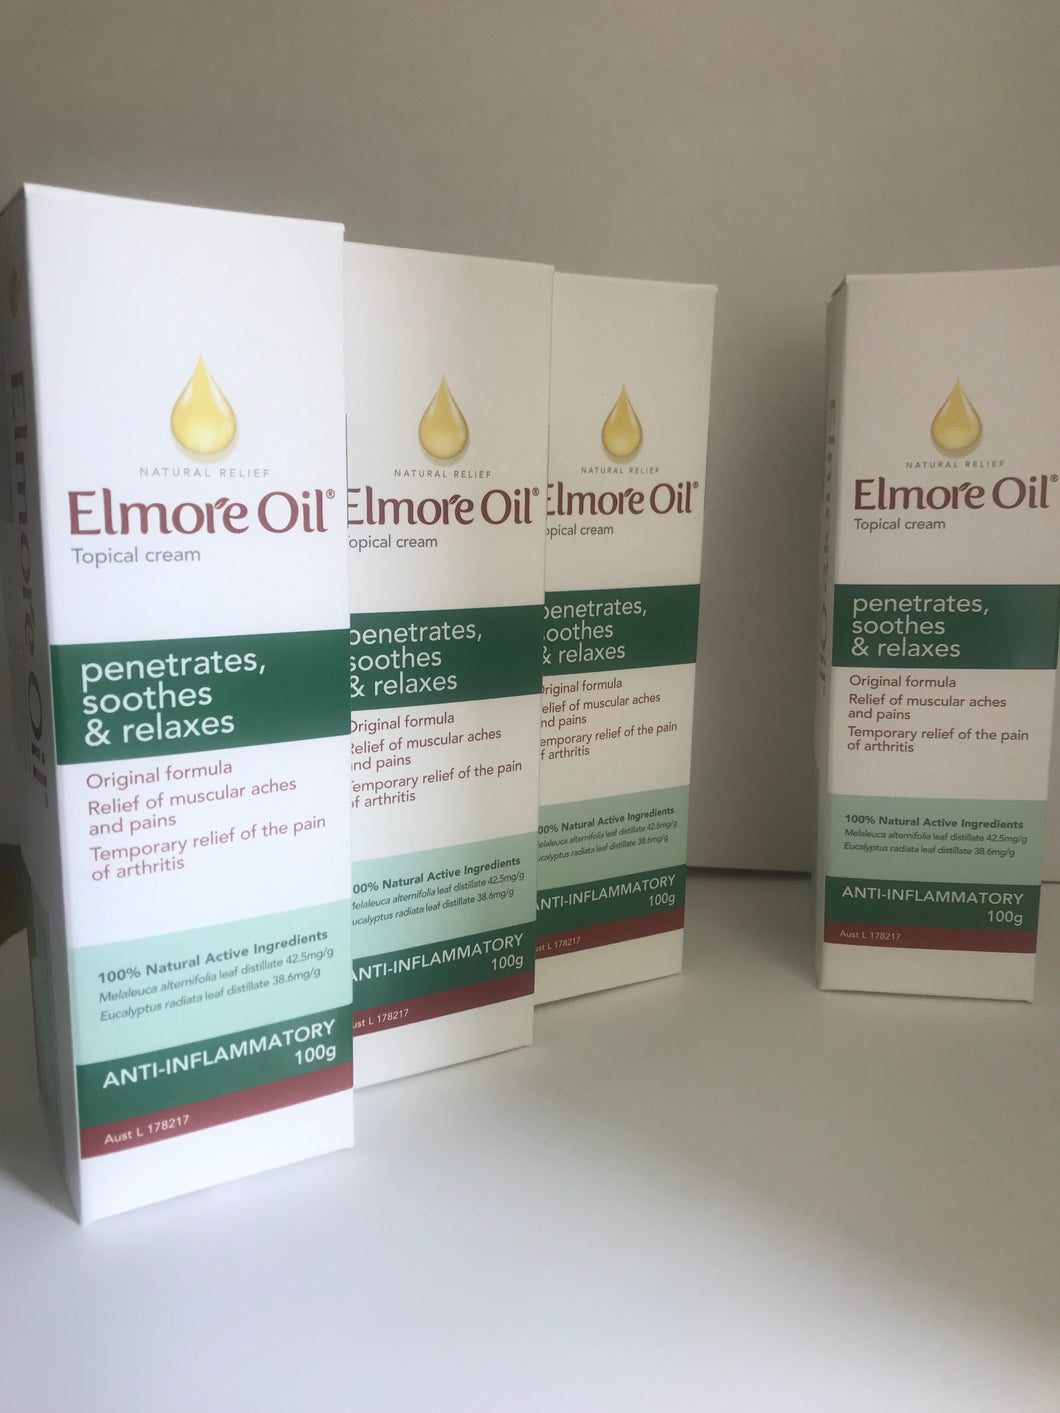 ELMORE OIL CREAM 100gm - BUY 3 + GET 1 FREE - SAVE $ 20.95